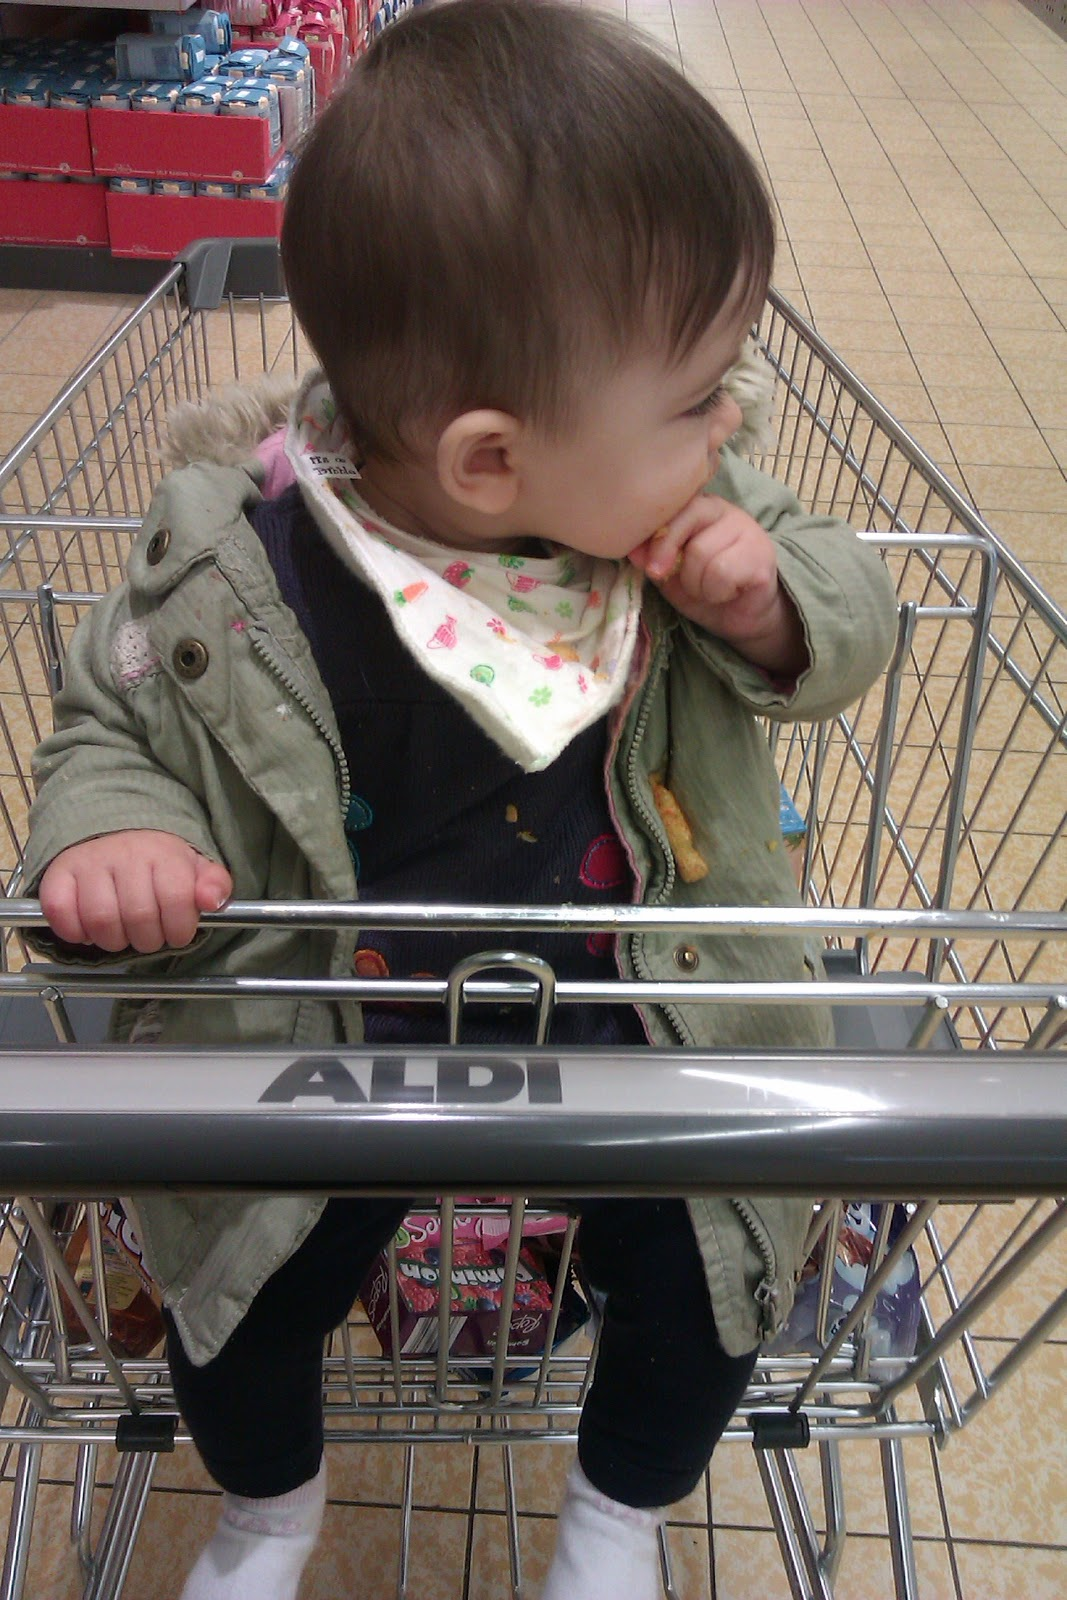 youngest in trolley